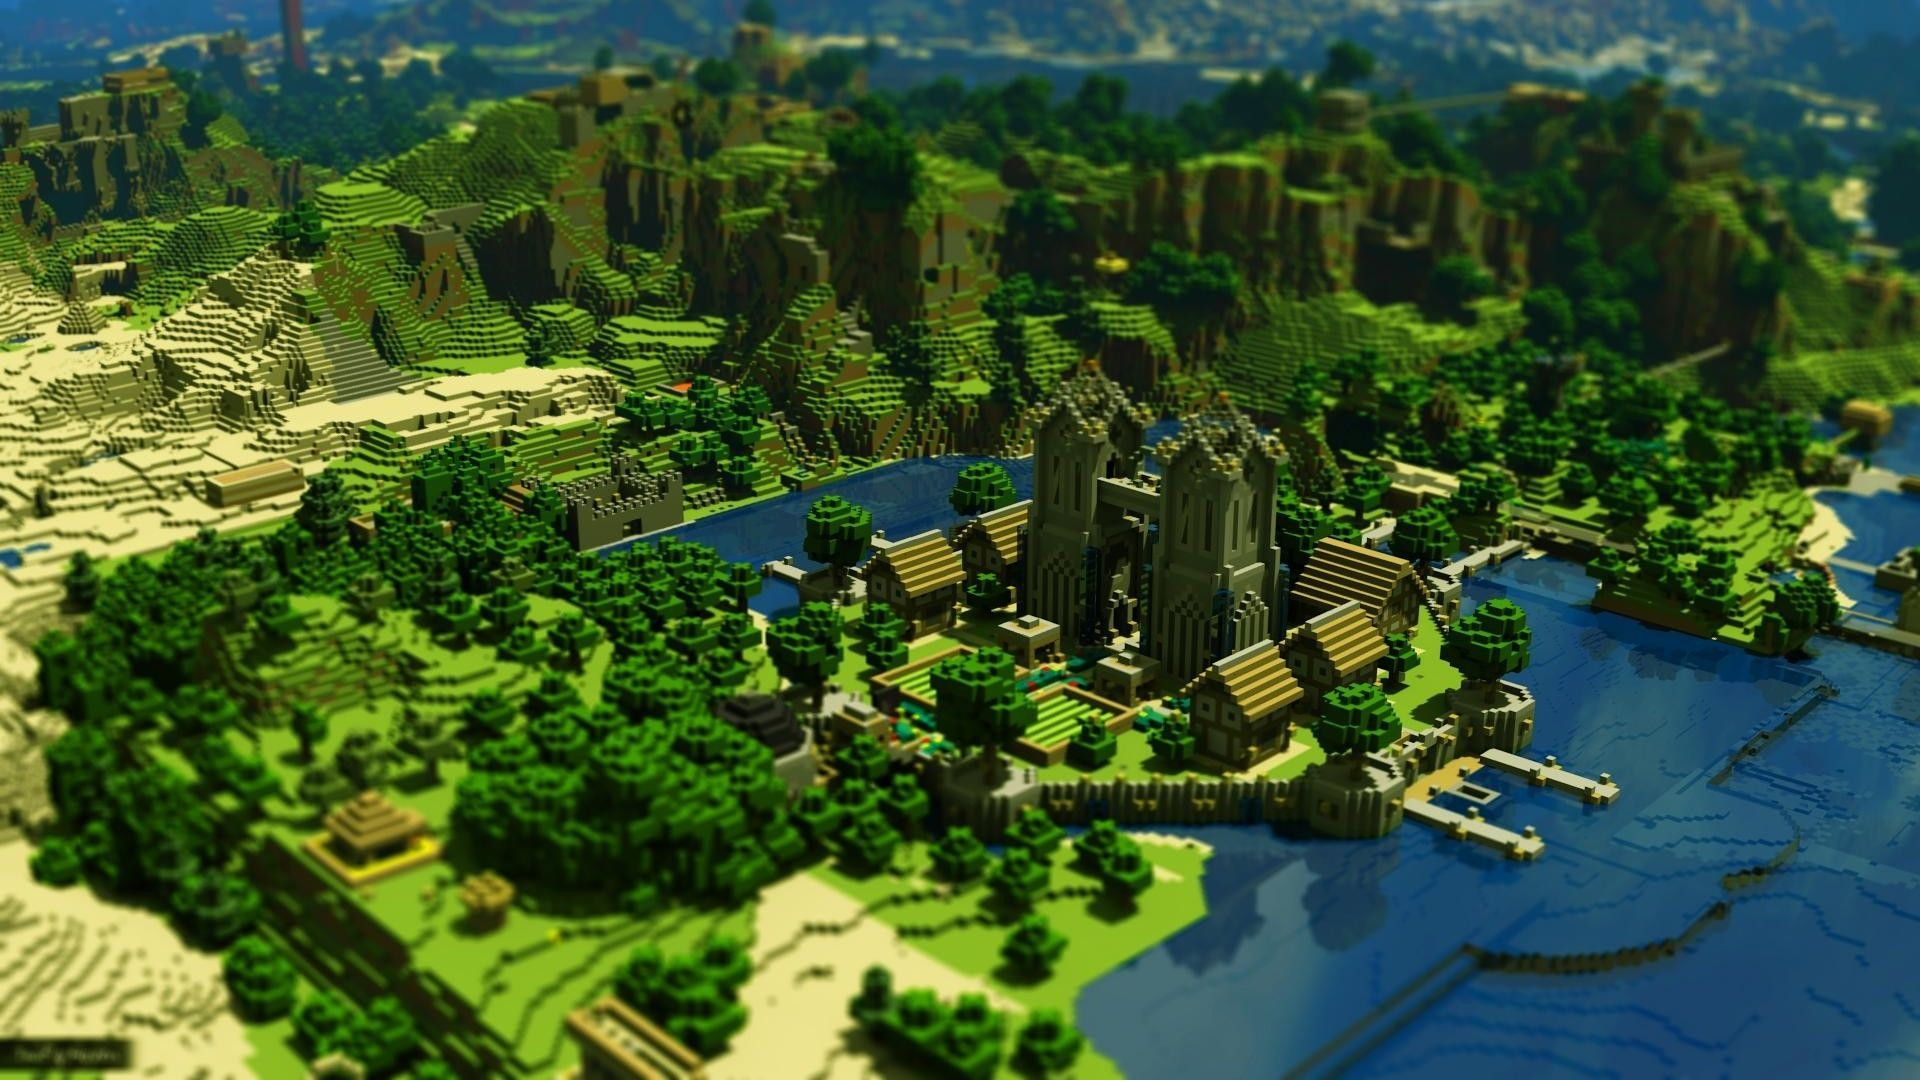 Popular Wallpaper Minecraft Forest - minecraft-scenery-wallpaper-24  Perfect Image Reference_4590100.jpg